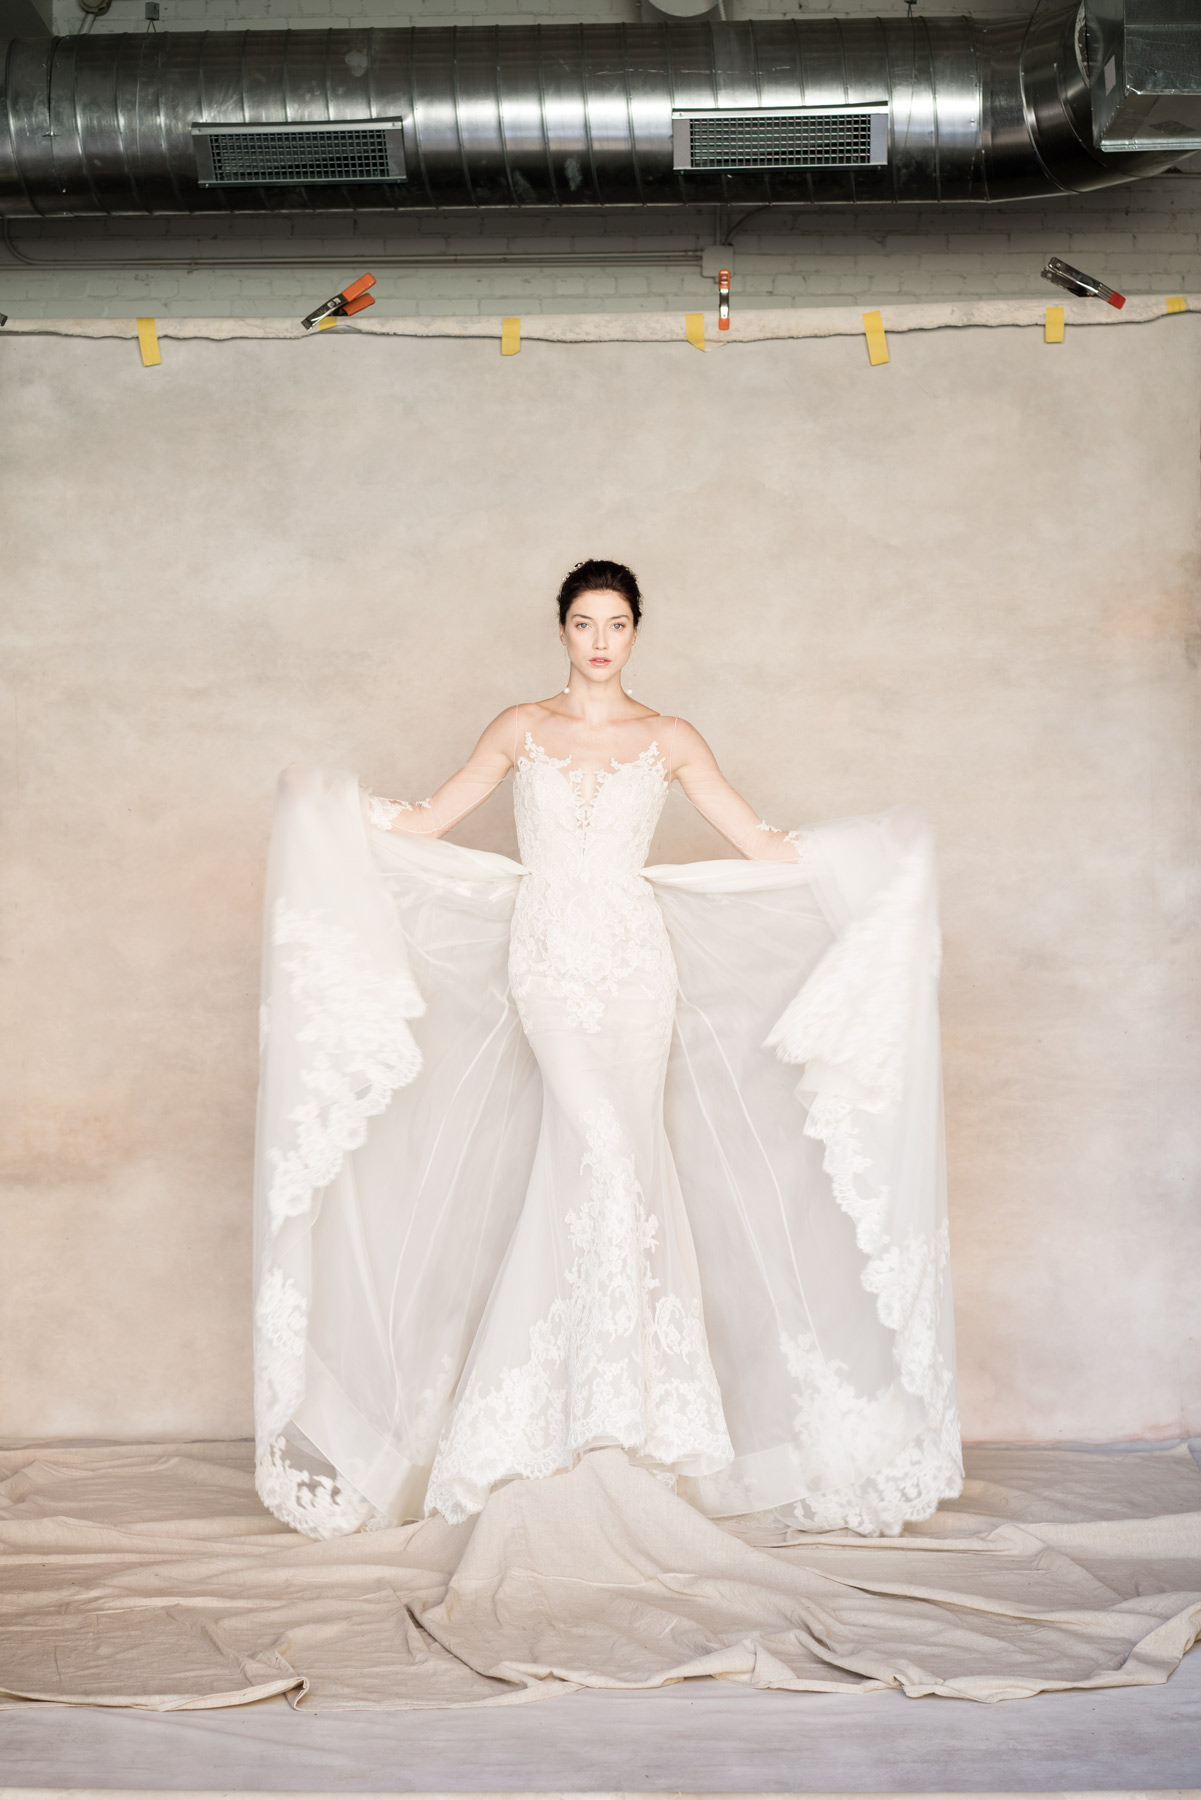 D Bridal fashion styled by Brittany Winter